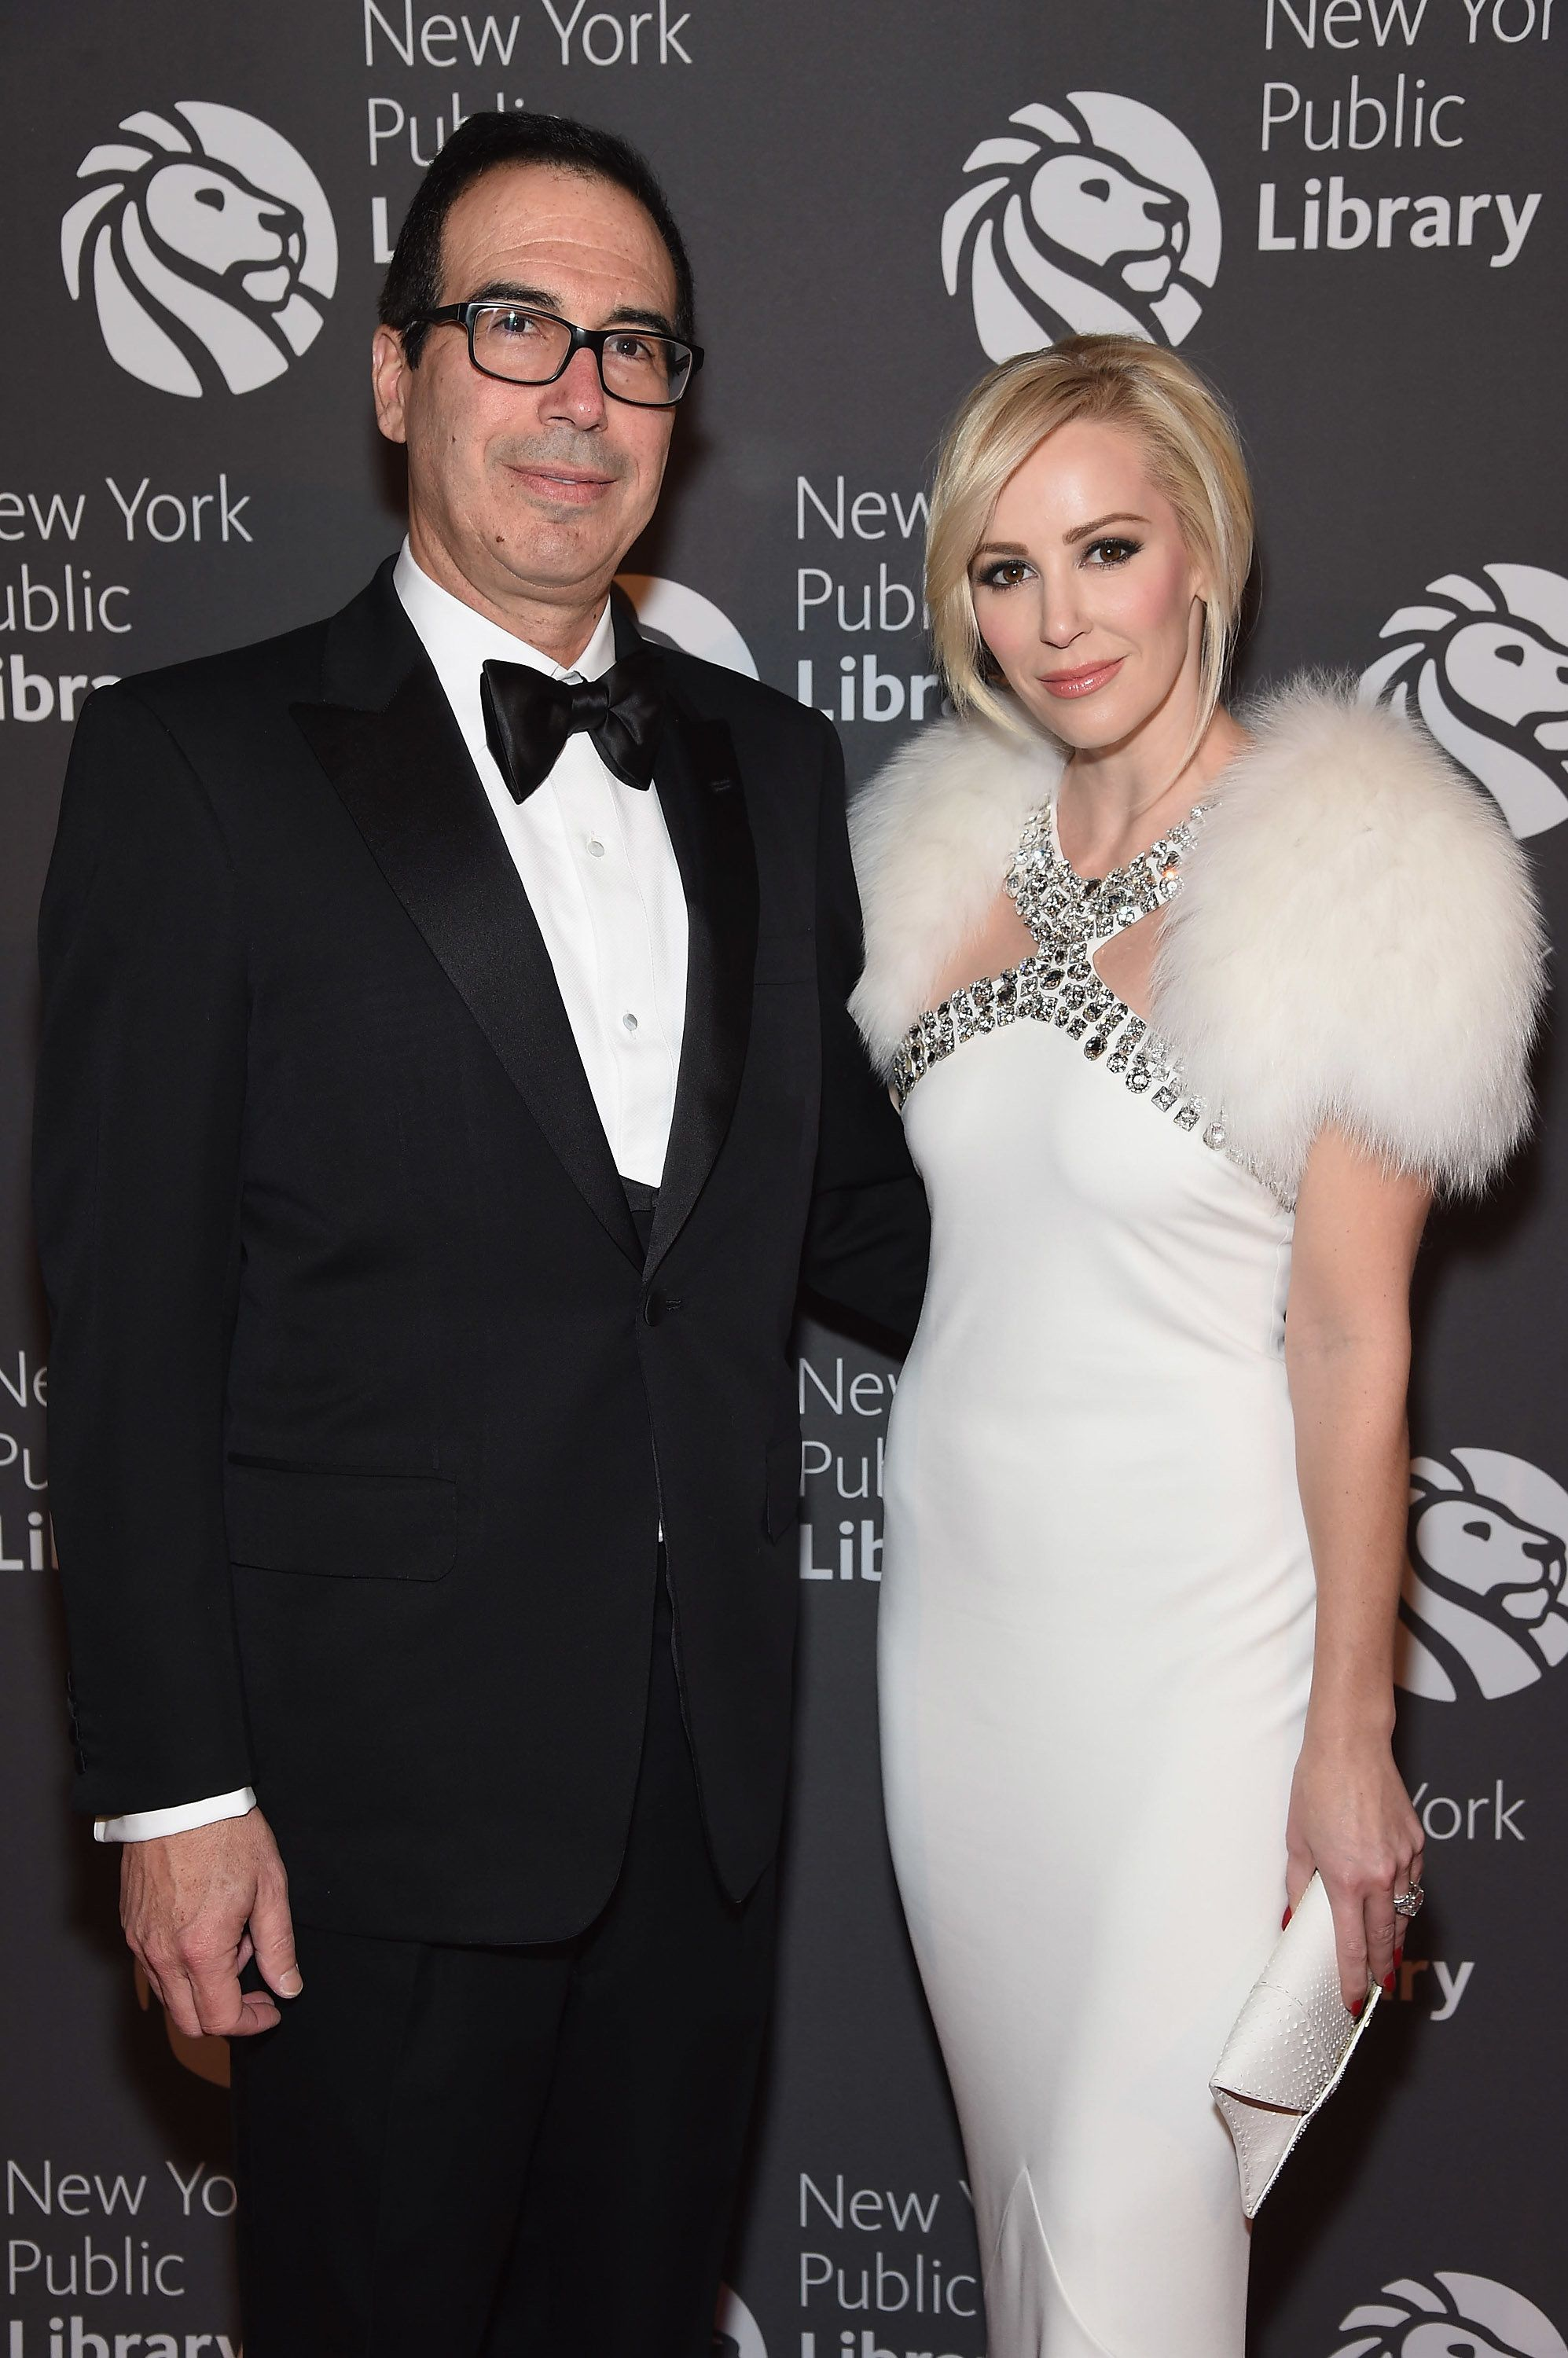 NEW YORK, NY - NOVEMBER 07: Steven Mnuchin and Louise Linton attend the 2016 Library Lions Gala at New York Public Library - Stephen A Schwartzman Building on November 7, 2016 in New York City.  (Photo by Gary Gershoff/WireImage)